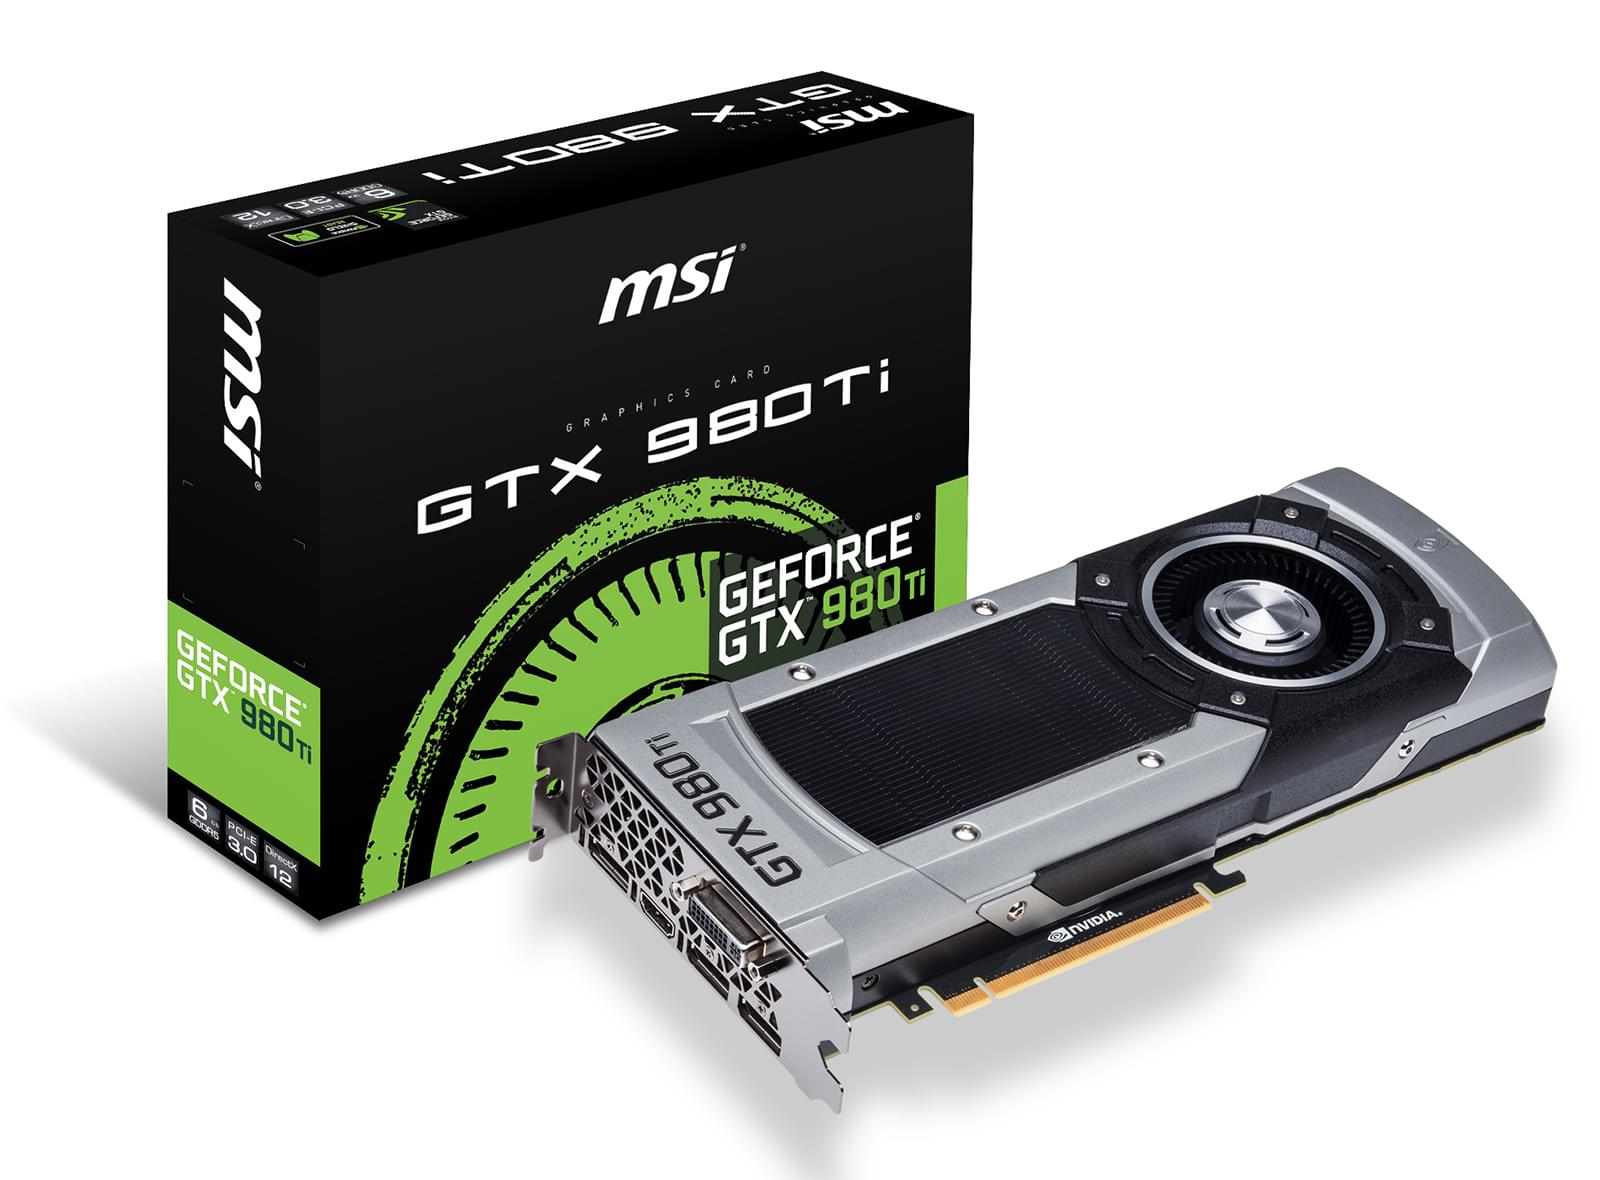 MSI GTX 980Ti 6GD5 6Go - Carte graphique MSI - Cybertek.fr - 0